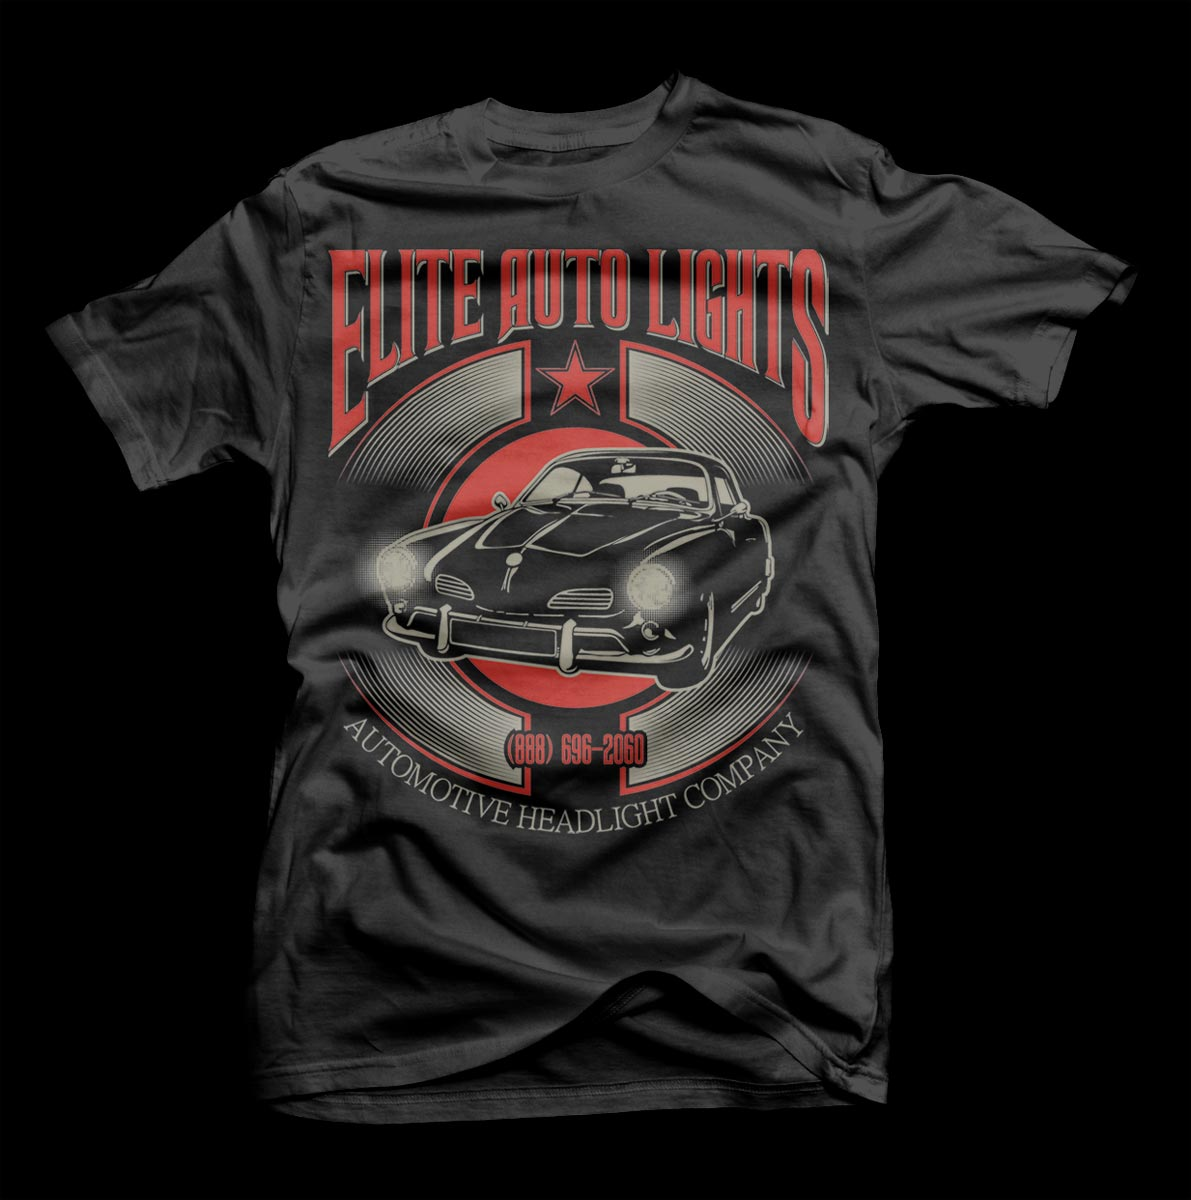 Modern masculine t shirt design for elite auto lights by for Modern t shirt designs